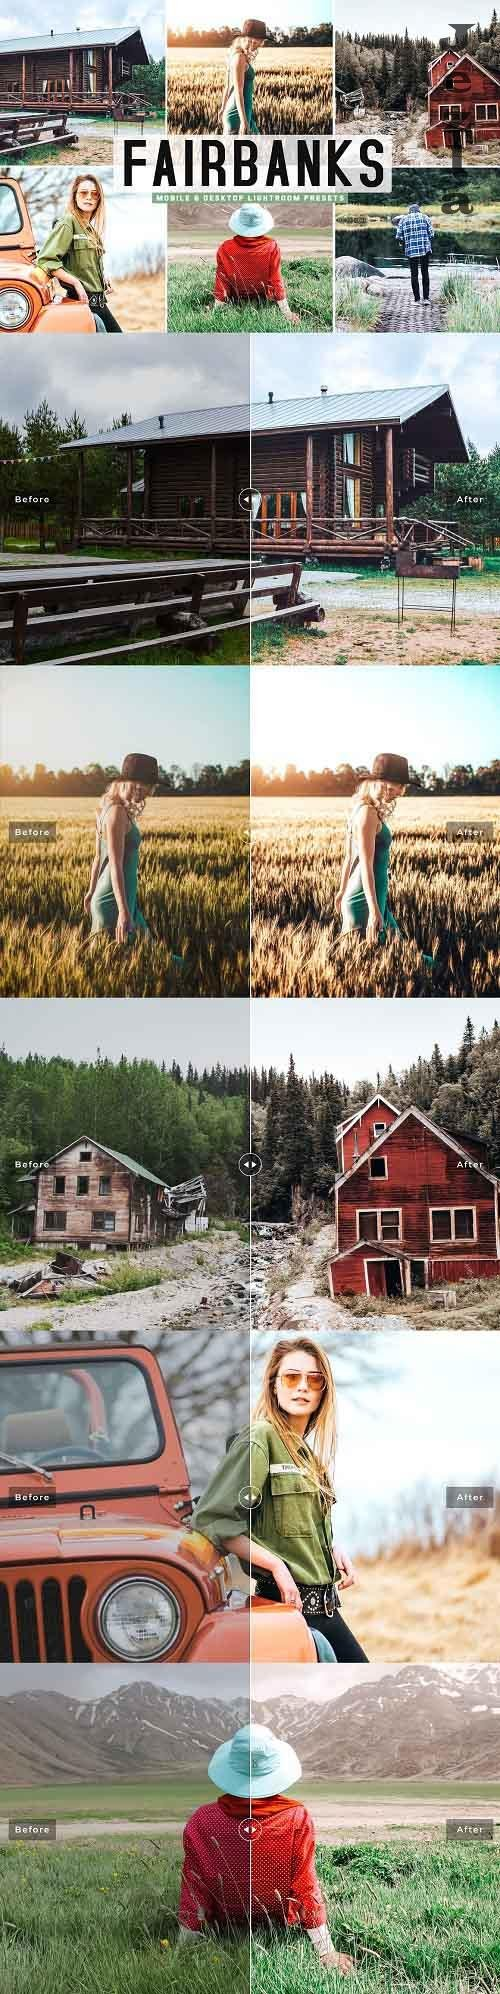 Fairbanks Pro Lightroom Presets - 5341958 - Mobile & Desktop